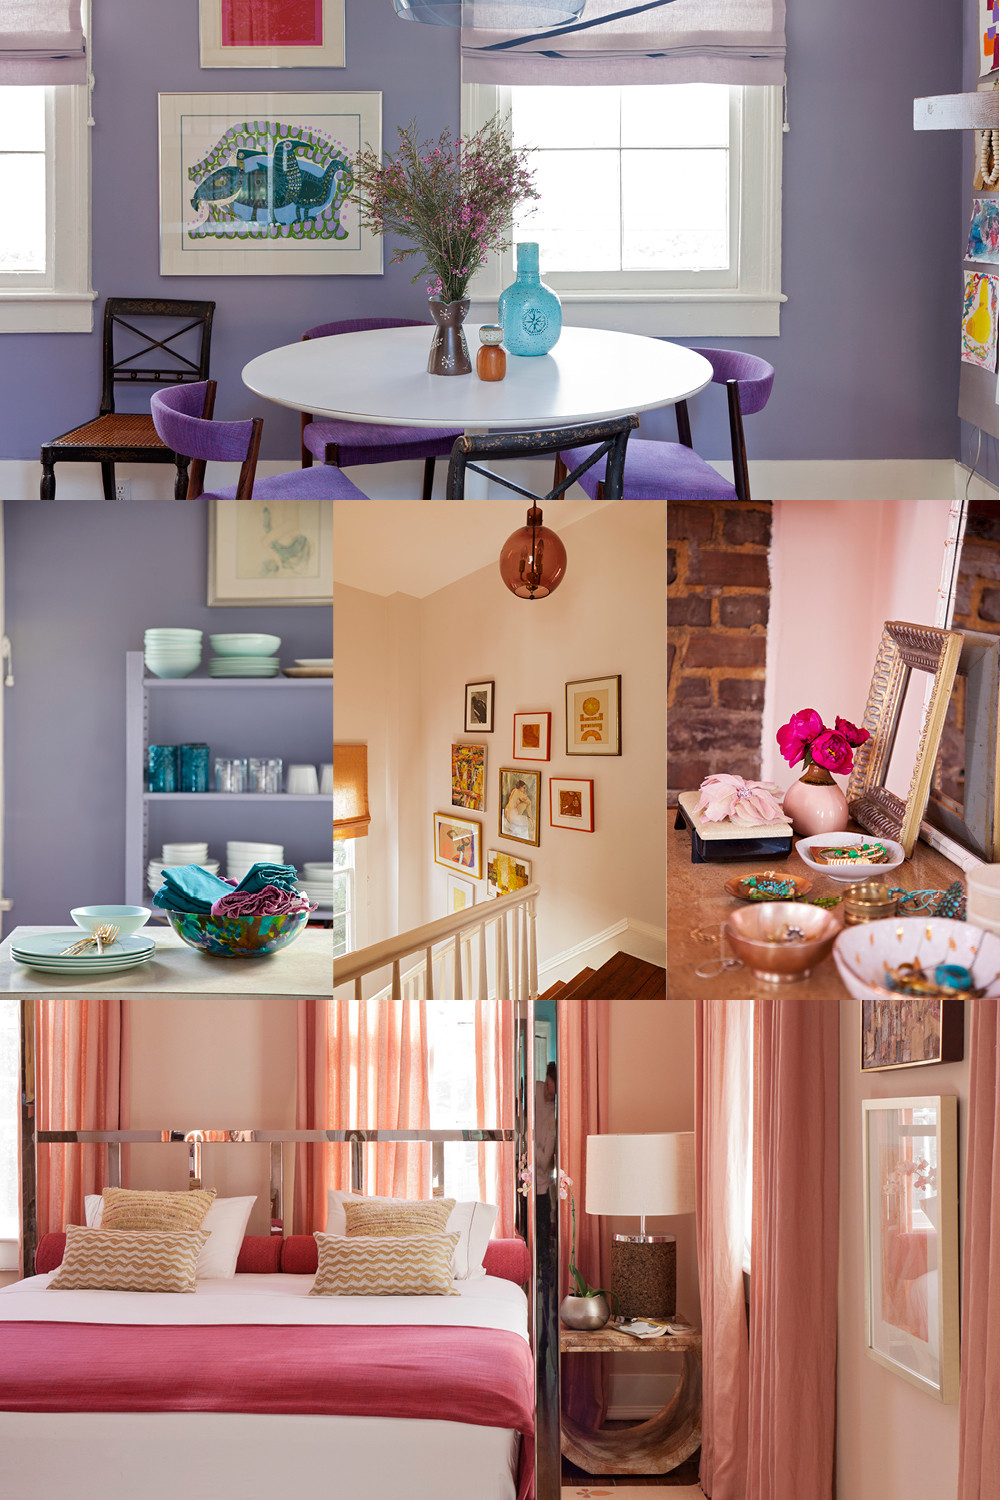 Paint proves transformative in the dining area, where luminous lavender walls play off purple Danish chairs. A palette shift in everything from textiles to artwork conveys a serene mood in the master bedroom.